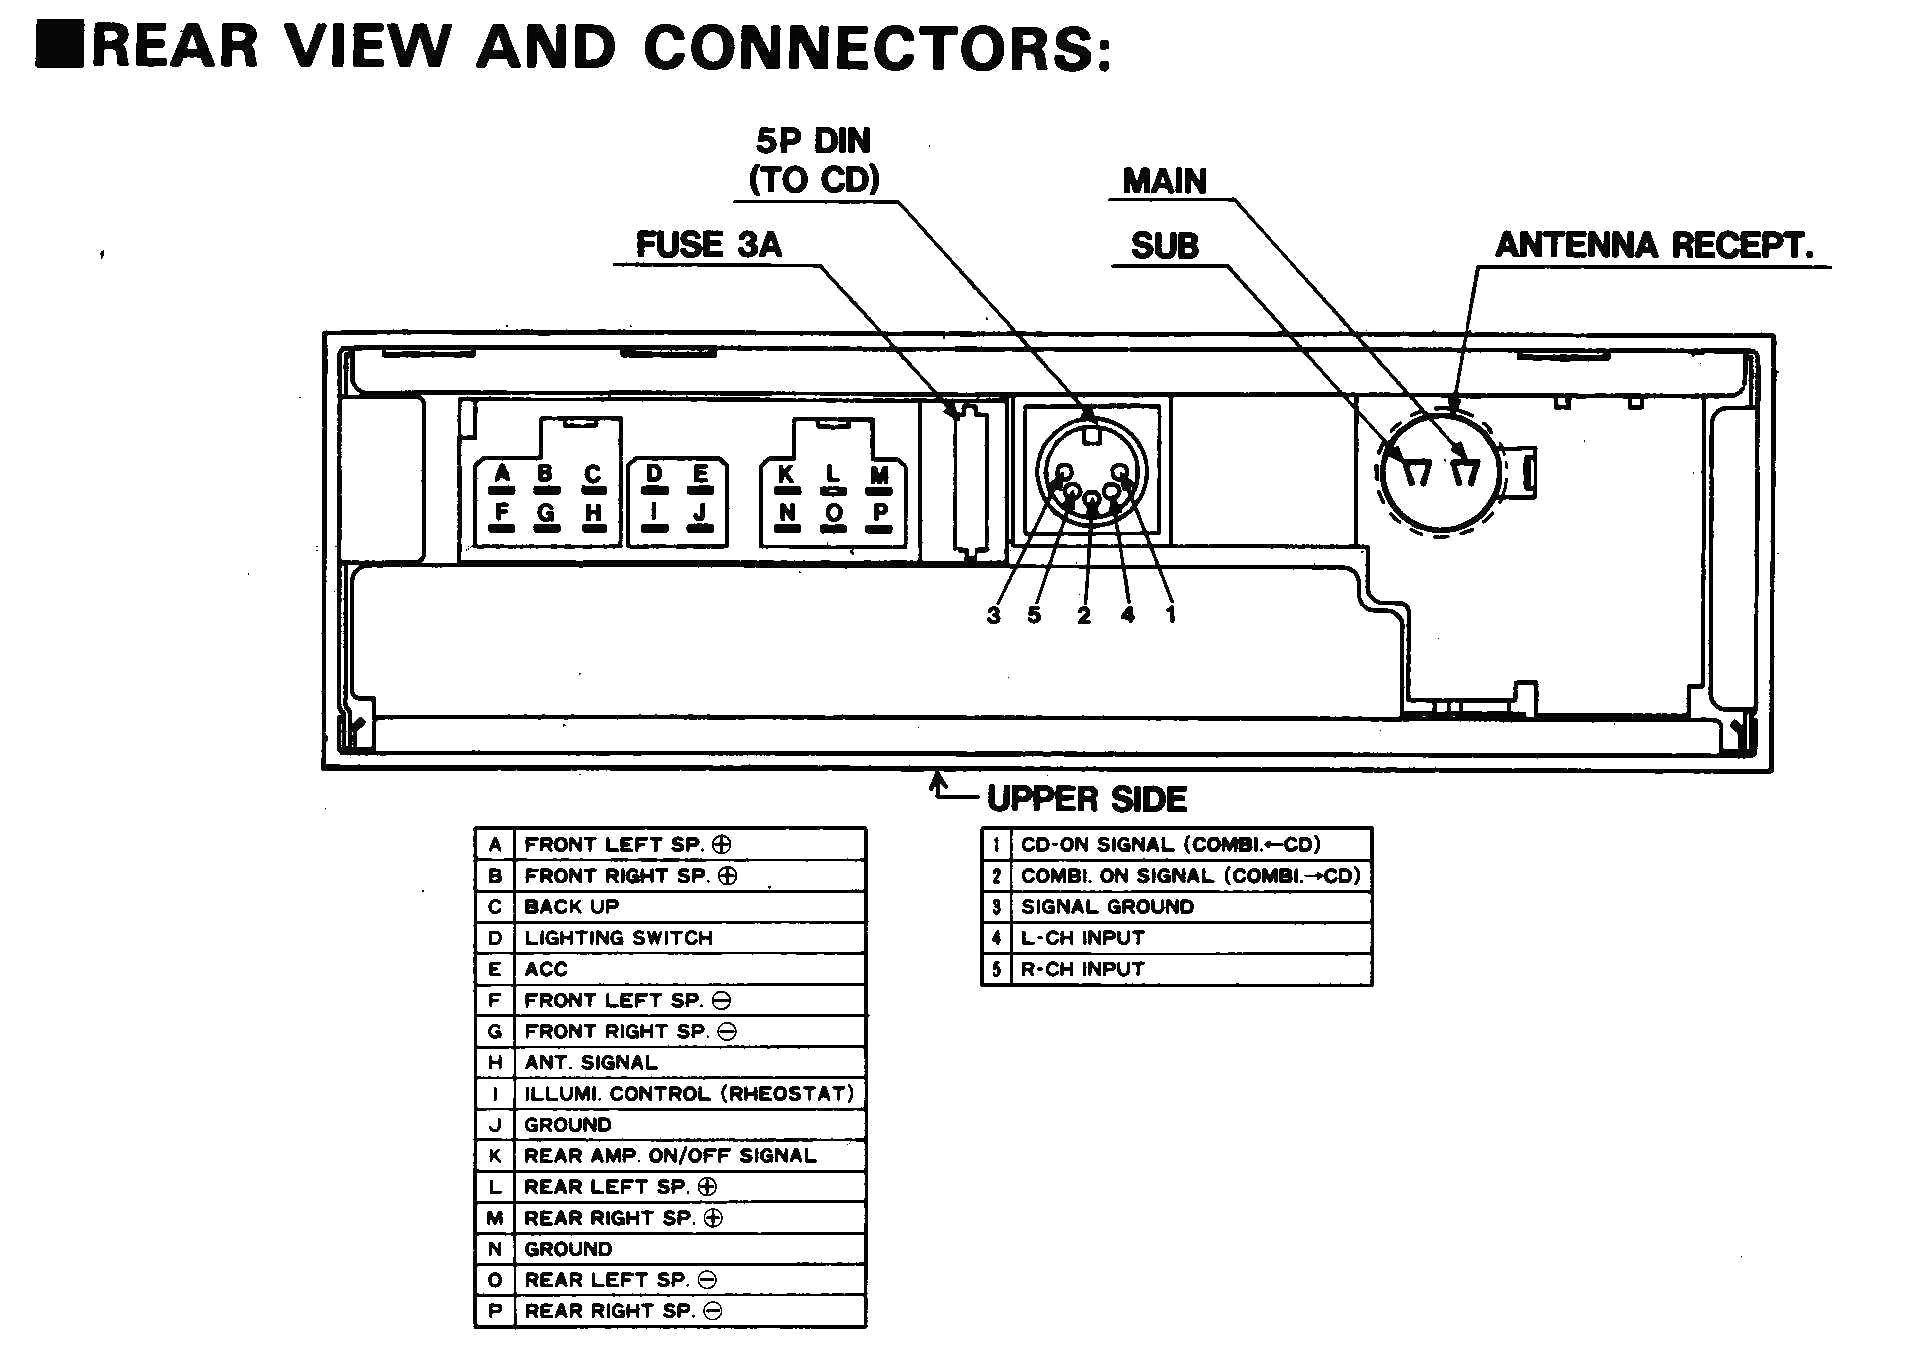 Car Stereo Wiring Diagrams On Kenwood Home Stereo Wiring ... on kenwood stereo receiver, kenwood model kdc install wiring, kenwood kdc 108 wiring harness, kenwood kdc 108 wiring-diagram, kenwood radio diagram, kenwood kdc 138 wire colors, car amplifier wiring diagram, radio wiring diagram, kenwood kvt 512 installation manual, kenwood kdc mp435u wiring-diagram, kenwood harness diagram, kenwood home stereo cabinet, wiring harness diagram, kenwood home stereo antenna, kenwood kdc-248u wiring-diagram, kenwood home stereo parts, kenwood home speakers, kenwood stereo wiring harness, kenwood house stereo system, kenwood model kdc wiring-diagram,